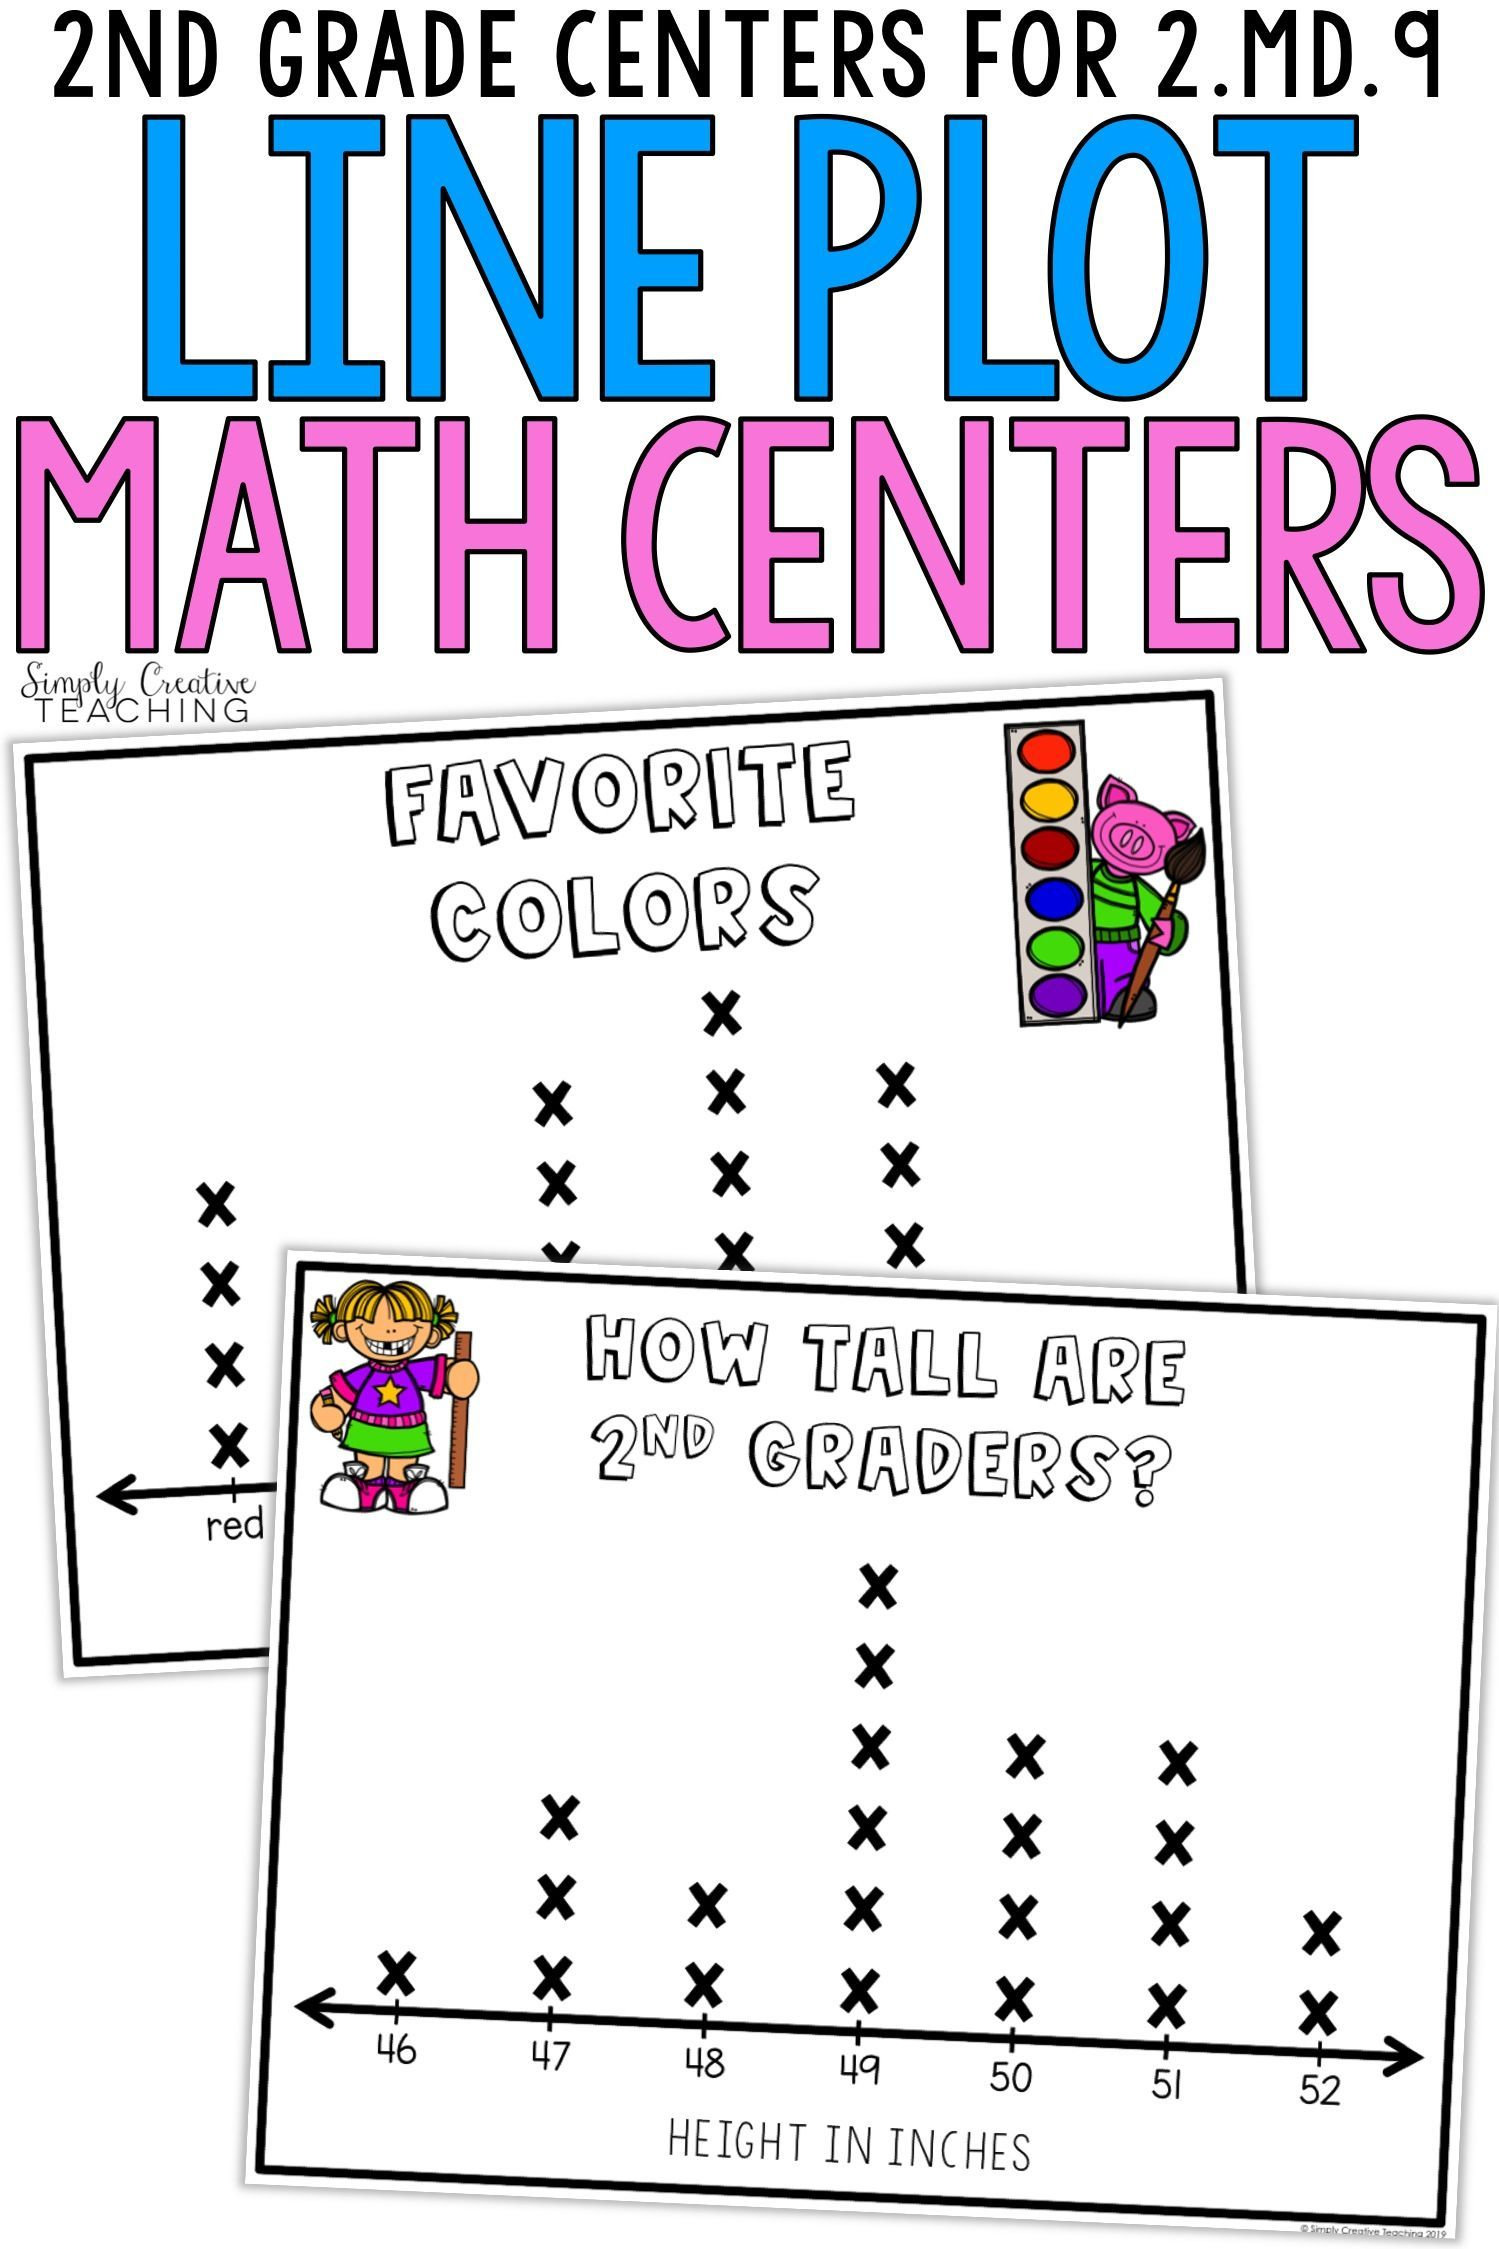 Teaching Line Plots In 2nd Grade Doesn T Have To Be Stressful Students Will Love These Math Centers And Activi 2nd Grade 2nd Grade Activities Small Group Math [ 2249 x 1499 Pixel ]